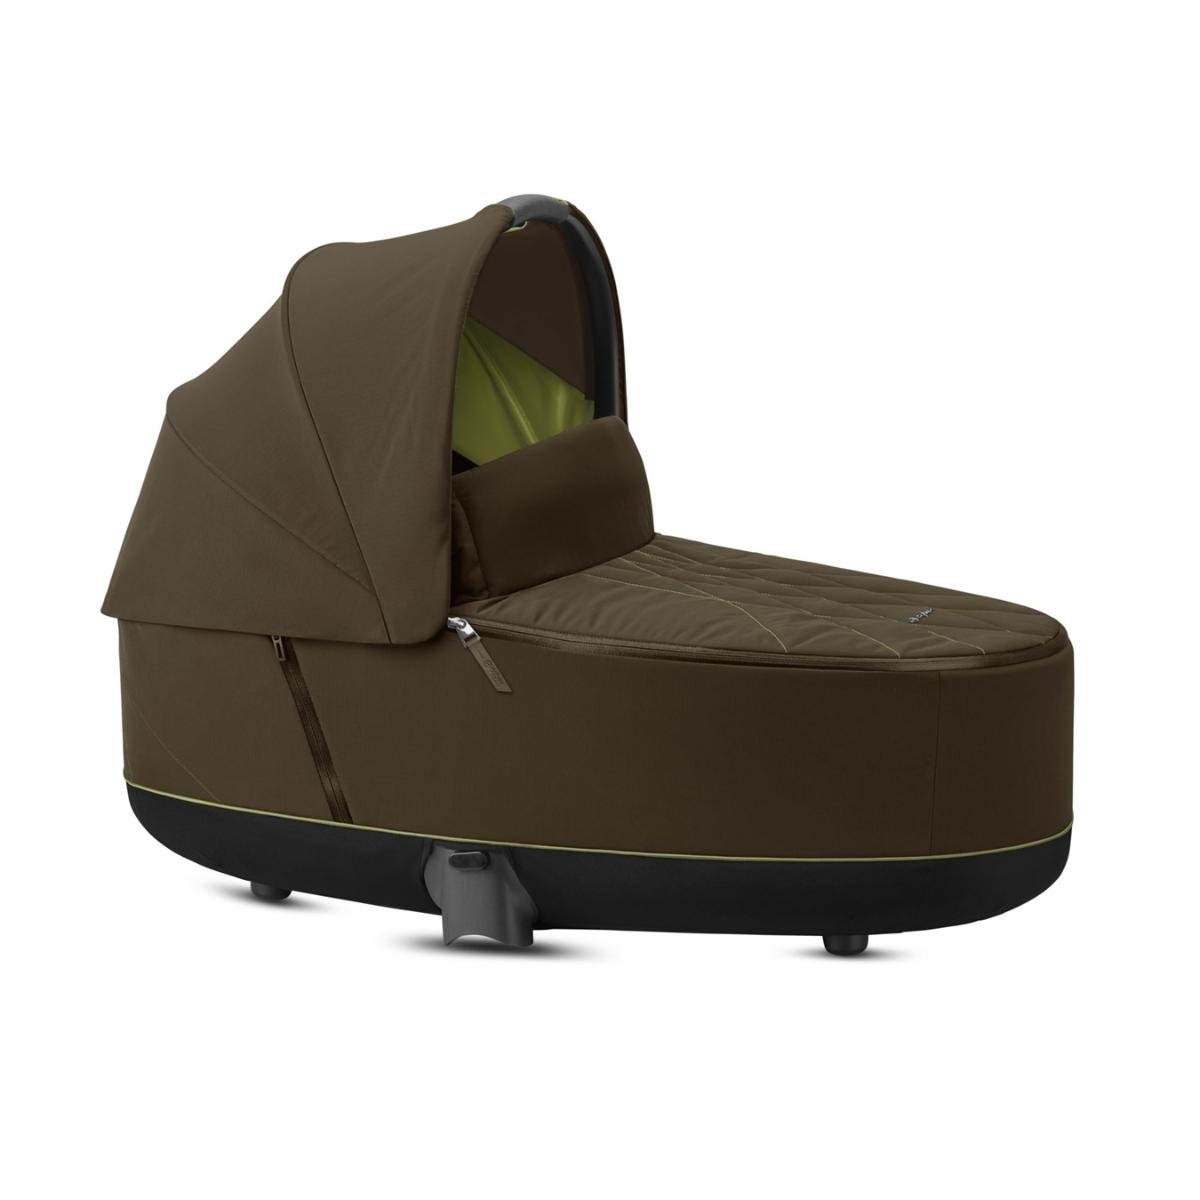 Cybex Lux Carry Cot for Priam, Khaki Green